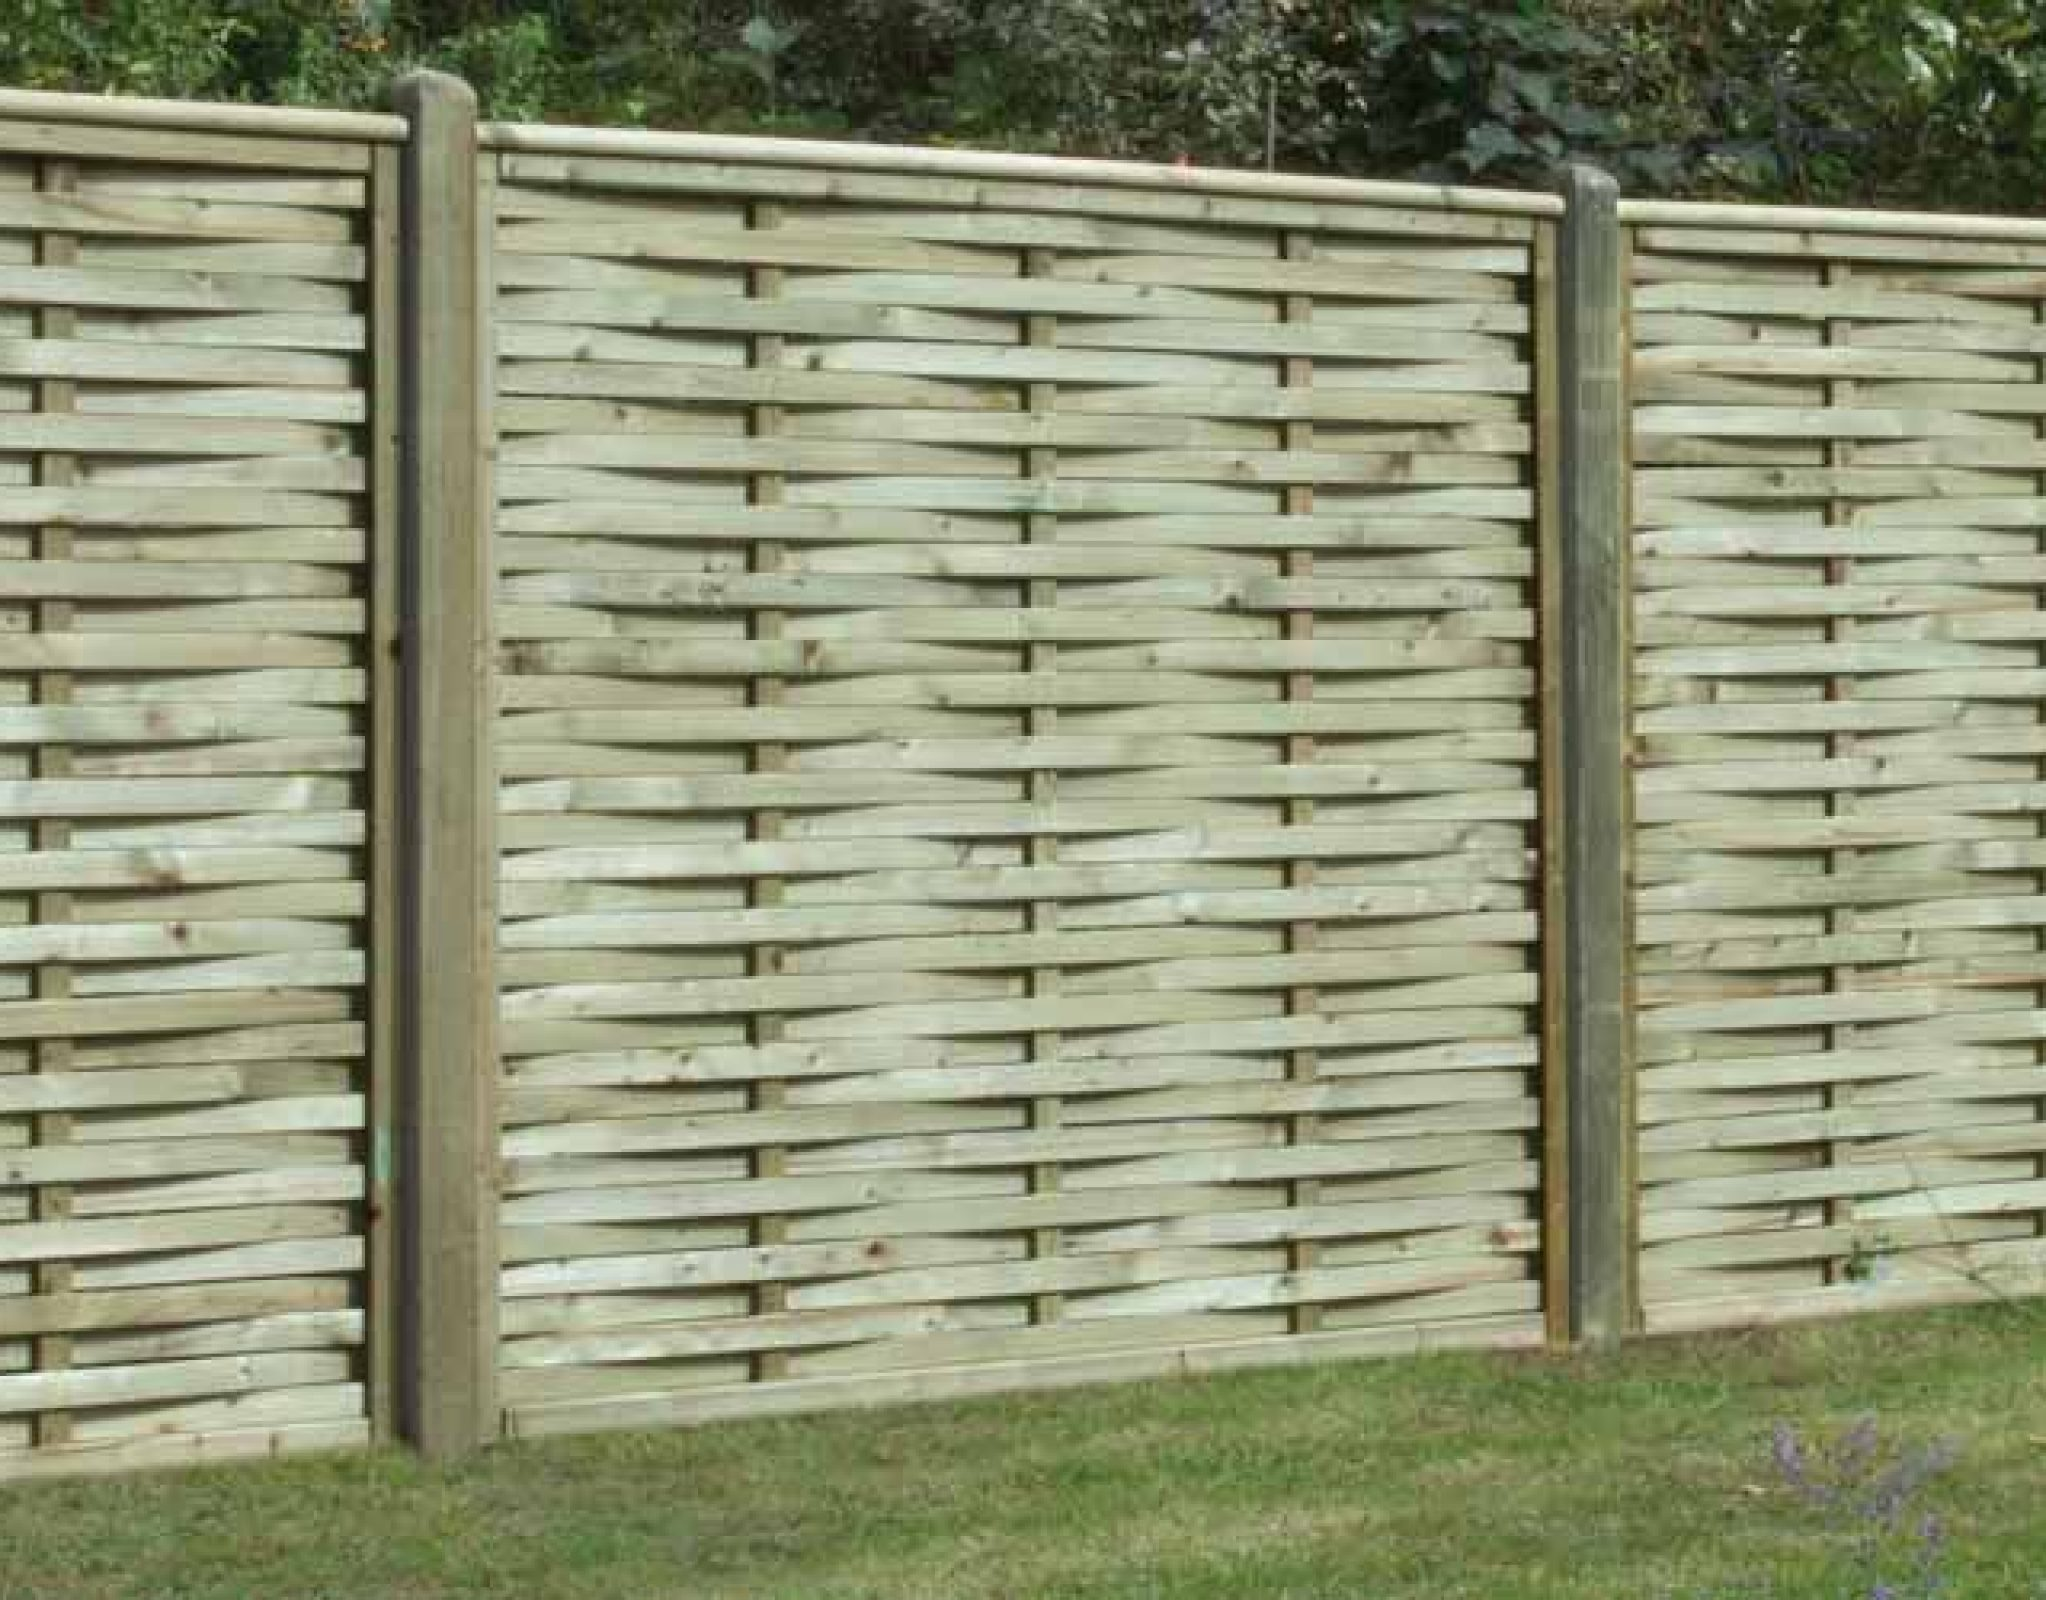 Fencing Supplies in Kent | Four Seasons Fencing Shop